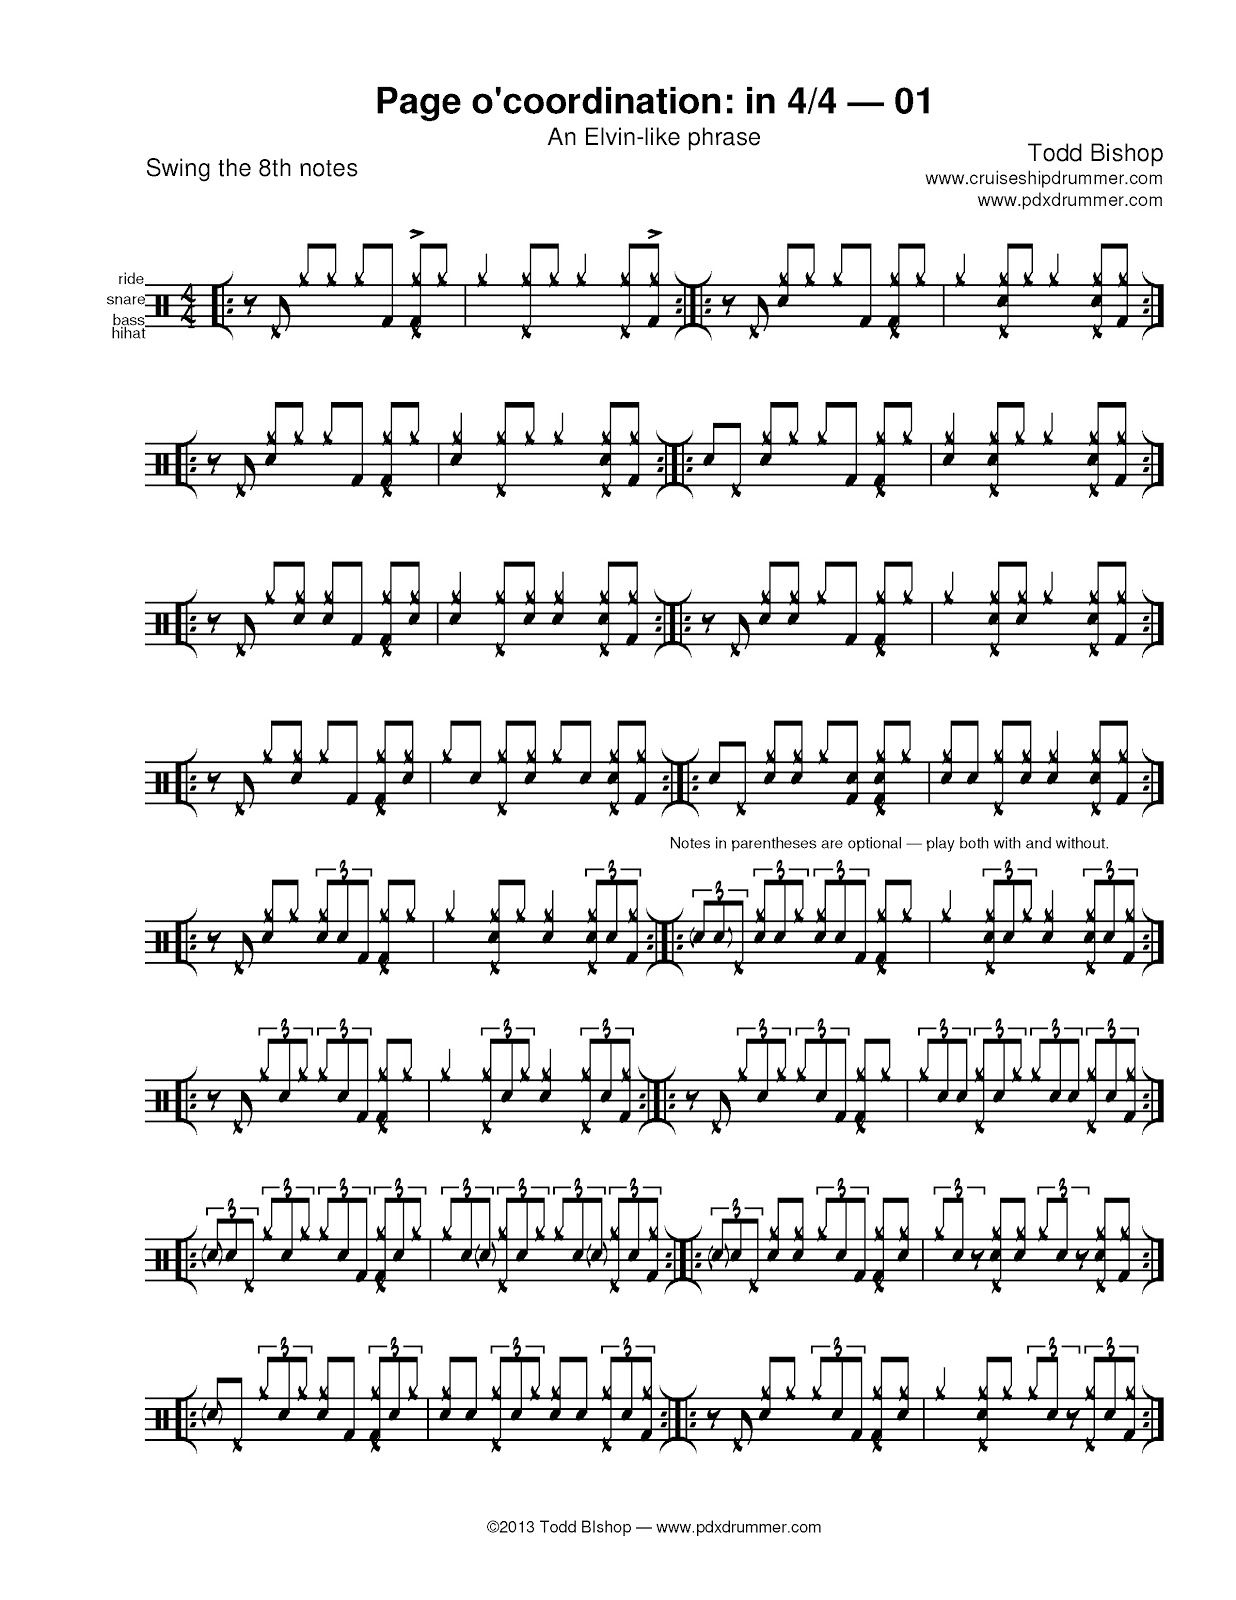 A Blog About Playing The Drums With A Focus On Jazz Funk And Latin Hundreds Of Pages Of Practice Materials And Transcriptions Drum Music Drums Sheet Music